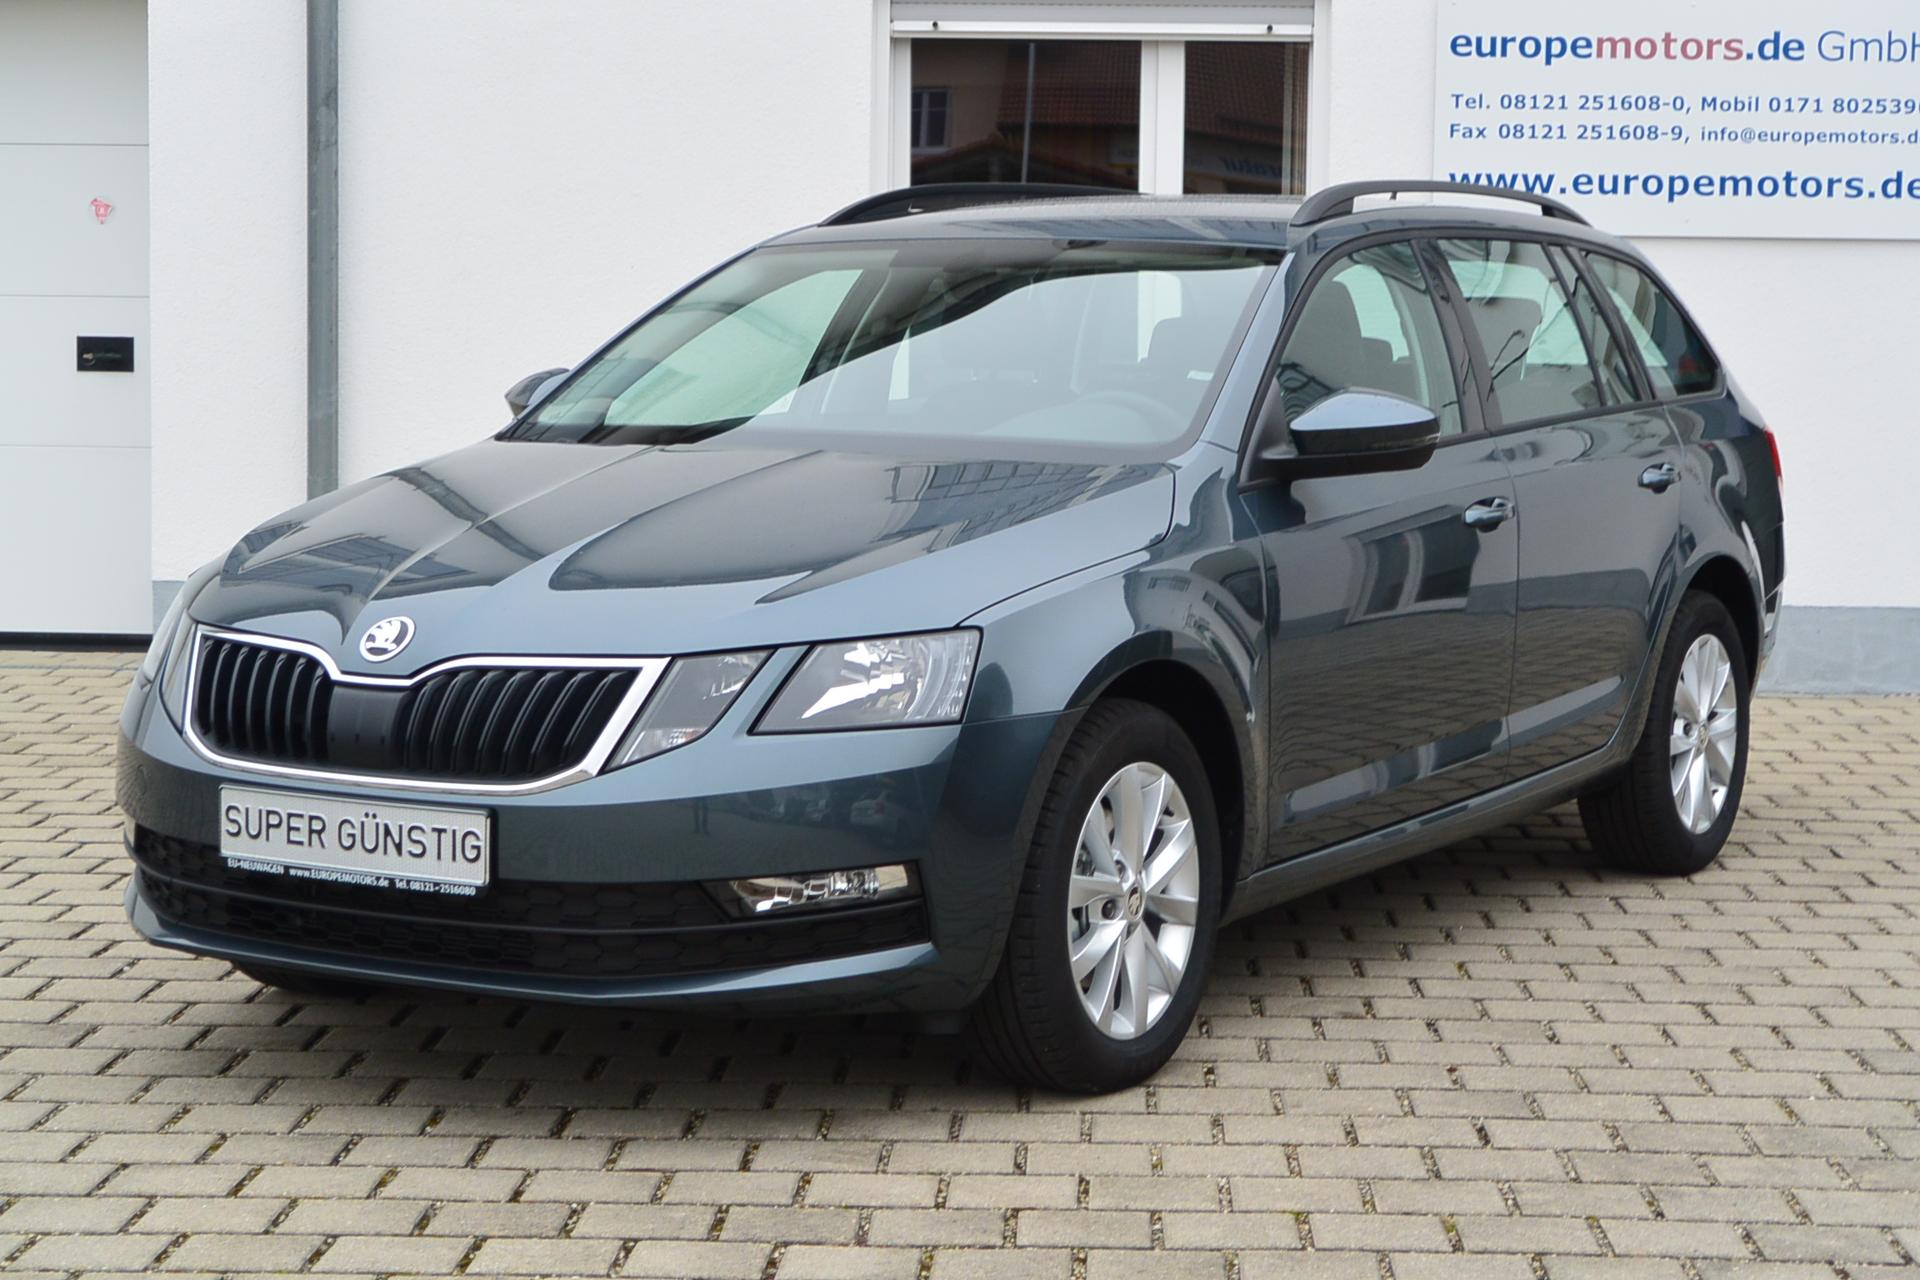 skoda octavia combi style navi full led reimport eu neuwagen zum g nstigen preis. Black Bedroom Furniture Sets. Home Design Ideas